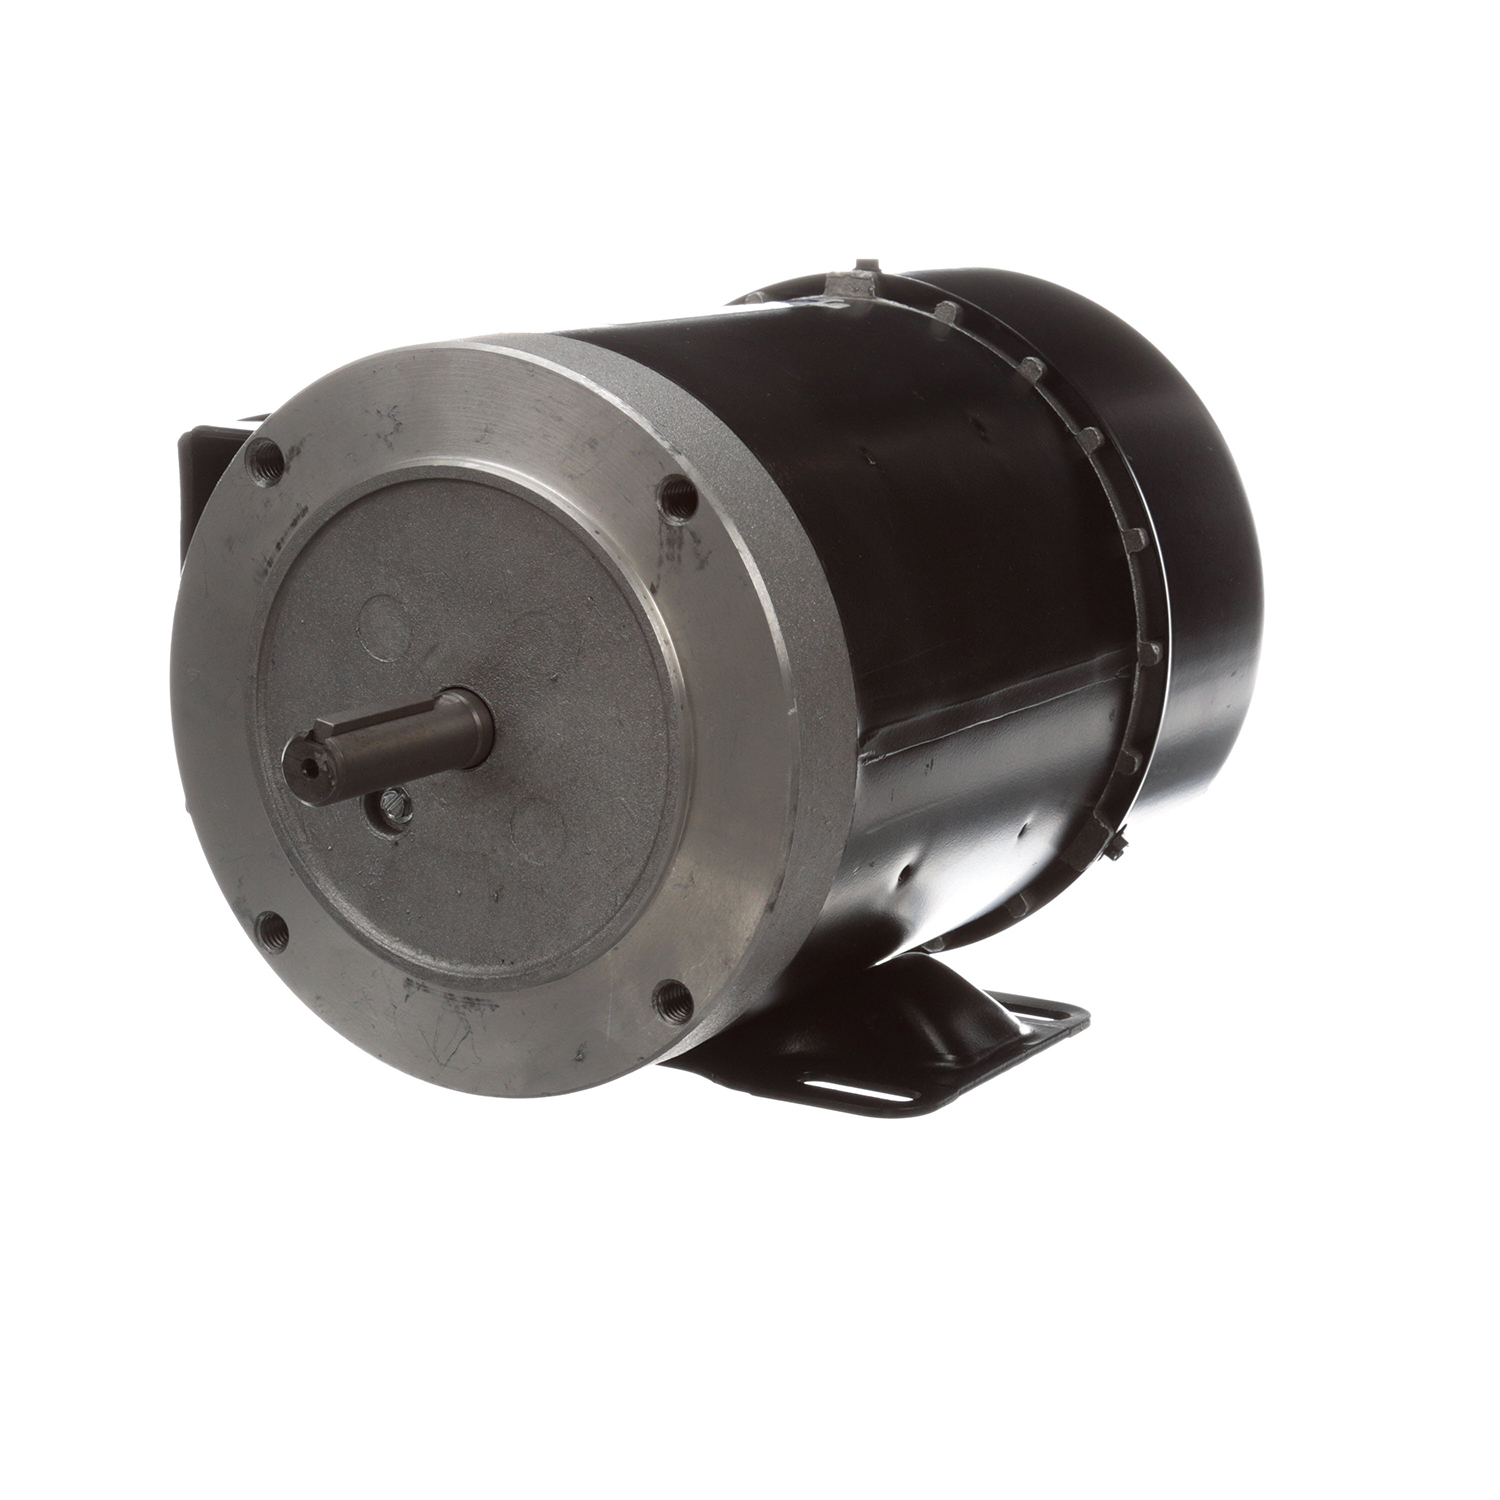 3/4 HP, 208-230/460 V, Totally Enclosed Fan Cooled (TEFC)